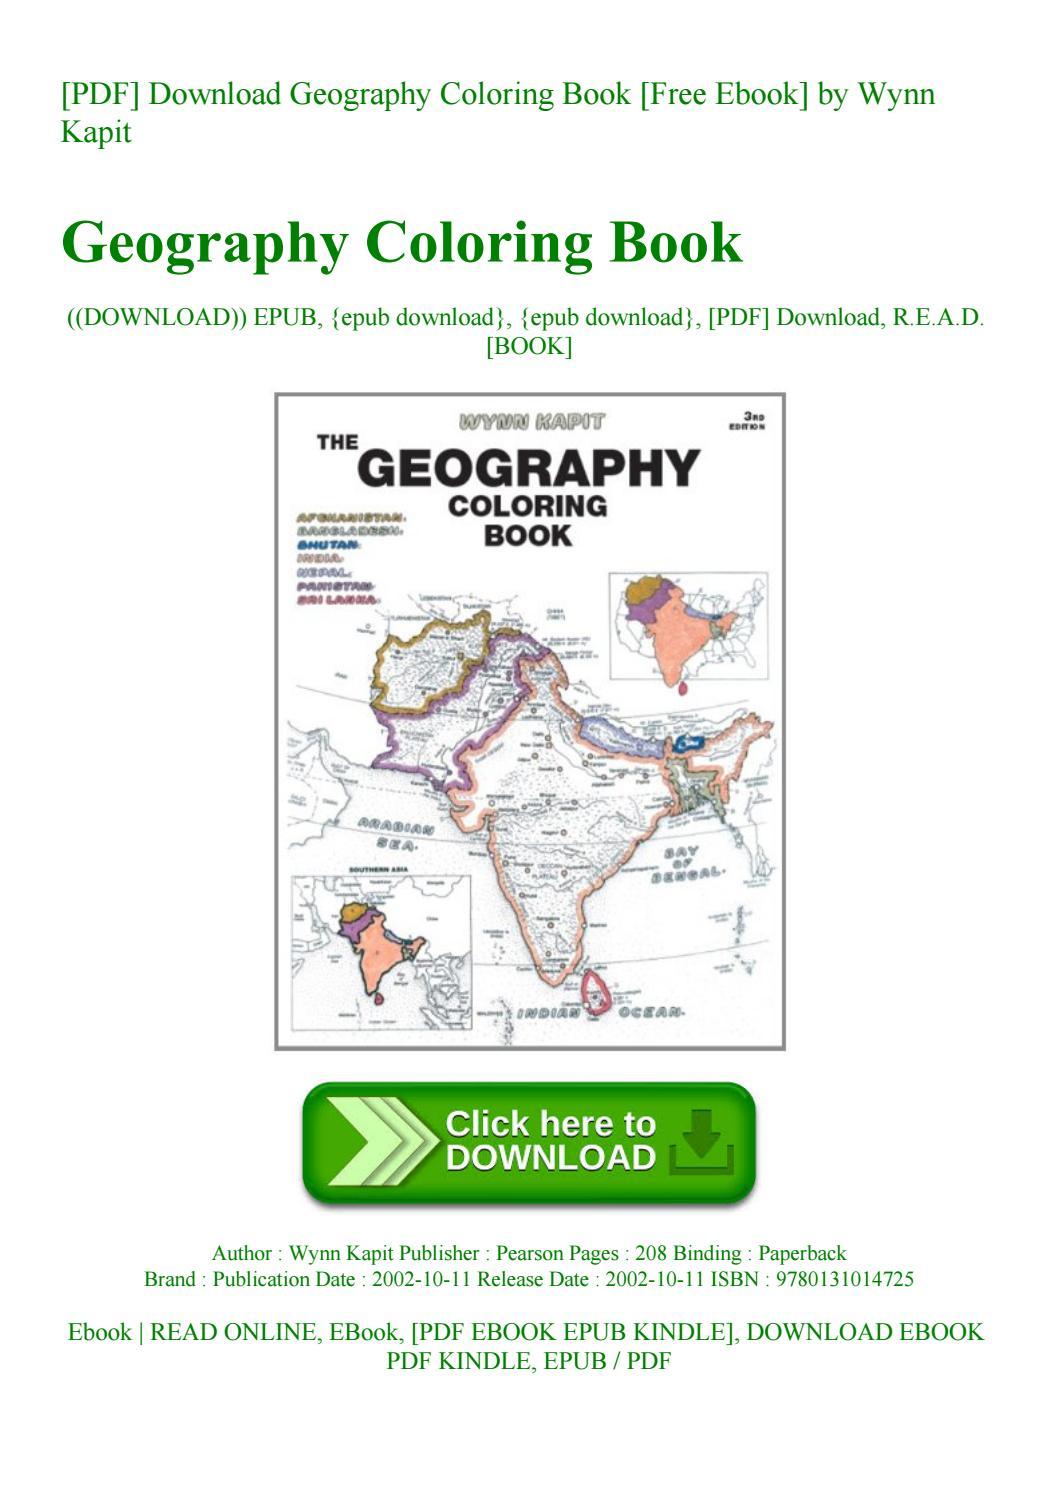 Pdf] Download Geography Coloring Book [free Ebook] By Wynn Kapit